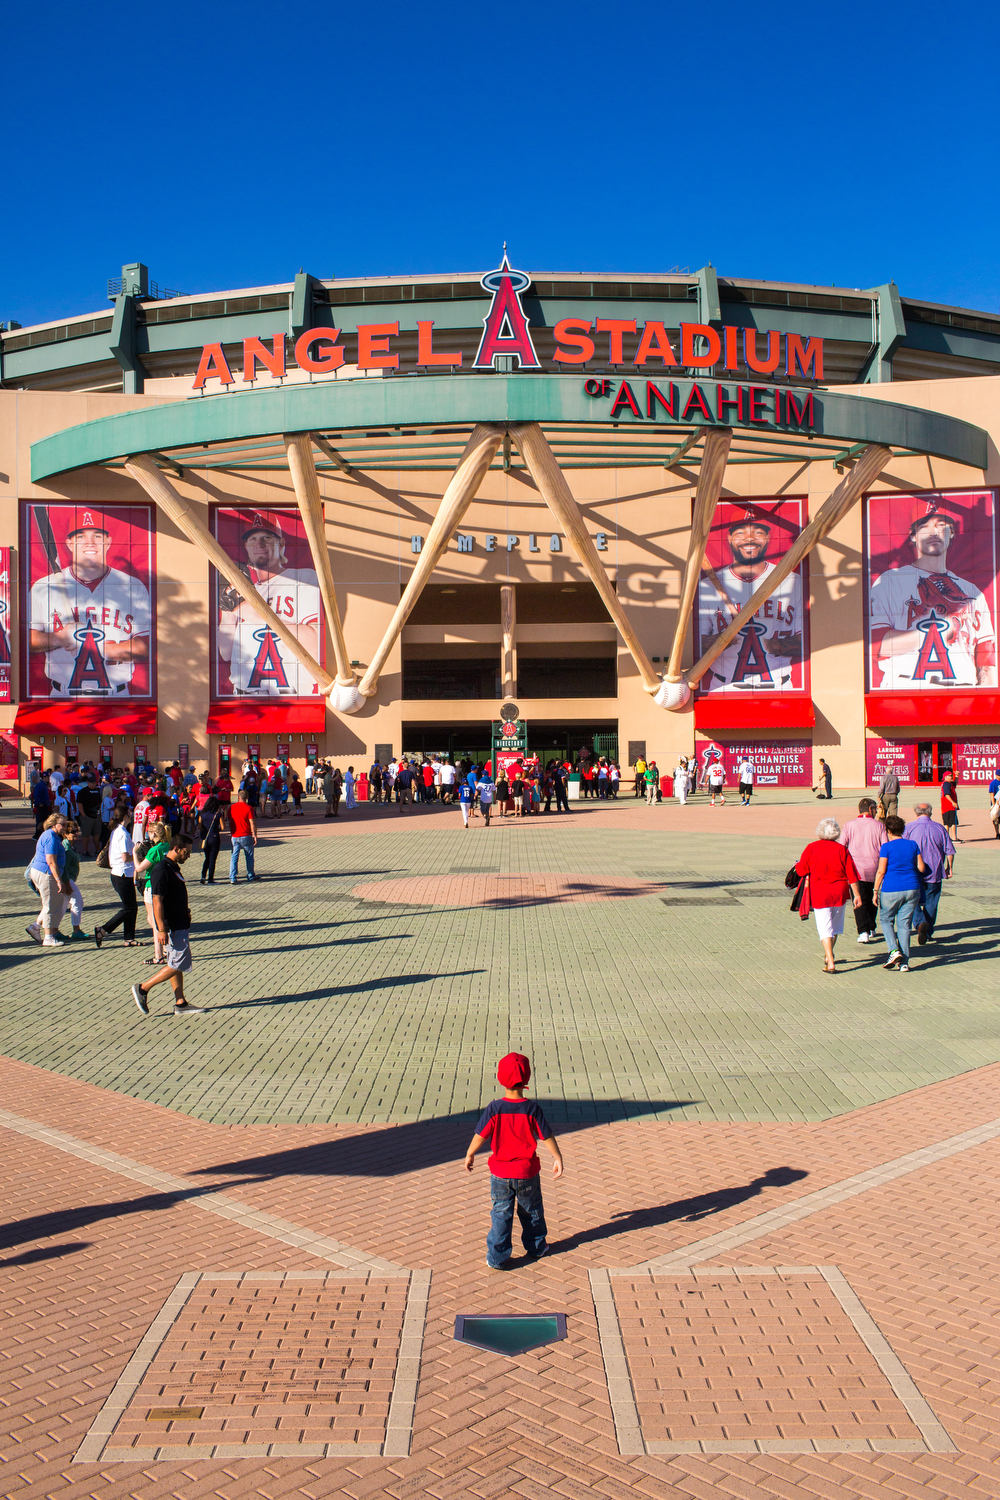 In the summer of 2014, I photographed a game at all 30 MLB stadiums. Here's a selection of images from my trip. See the full project  here.   In Anaheim, CA, a young fan stands outside Angels Stadium of Anaheim. The home plate gate entrance features a full-size brick infield and pitcher's mound.